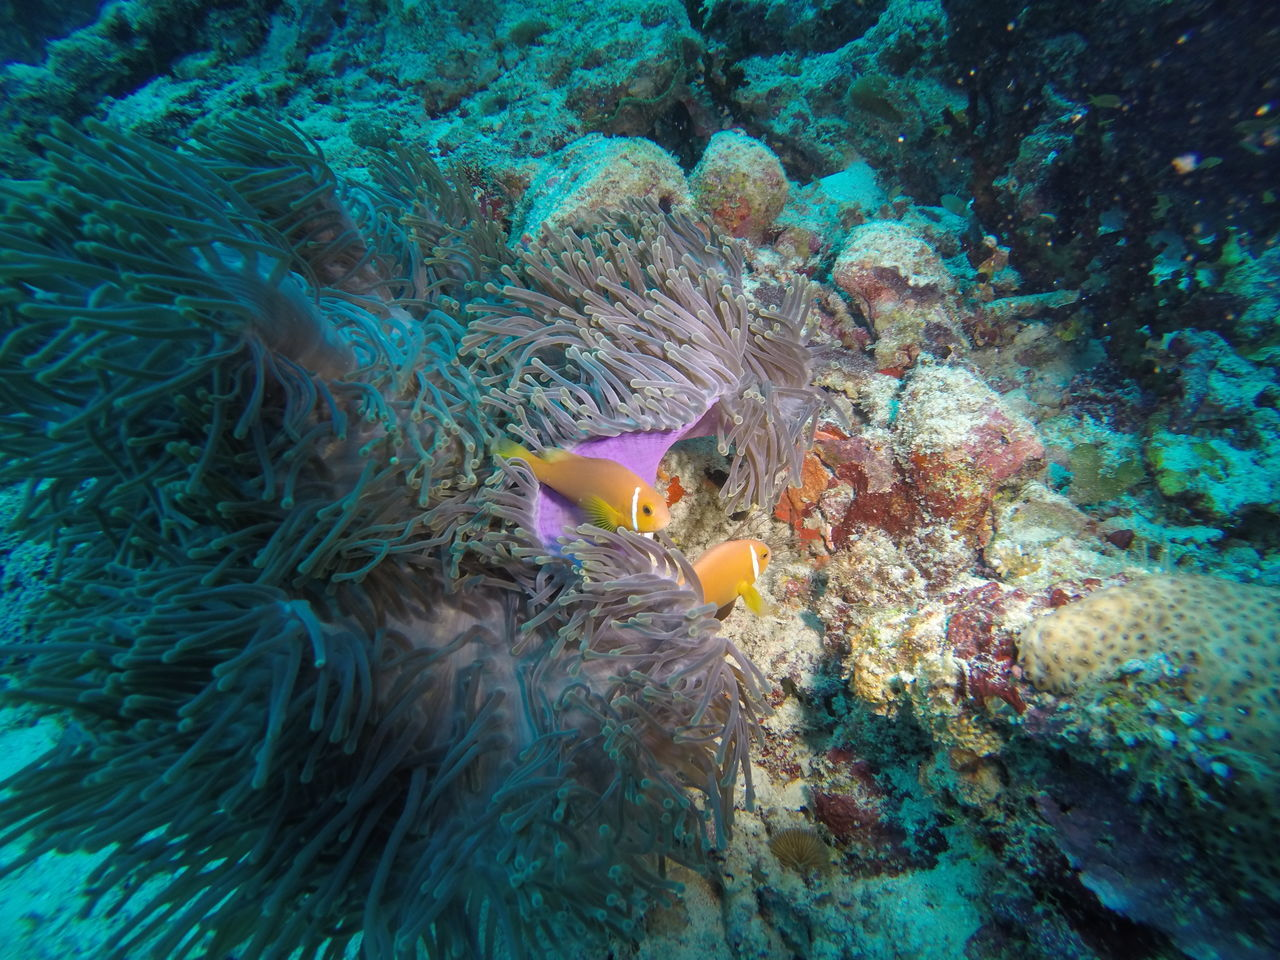 Anemone or Clown fishes with their home anemone on a reef in the southern part of the Maldives Adventure Anemone Atoll Clownfish Diving Egypt Fish Fishing Maldives Maldives Islands Nature Nature Lover Nature Photography Naturelovers Ocean Red Sea Reef SCUBA Scuba Diving Sea Life Softcoral UnderSea Underwater Underwater Photography